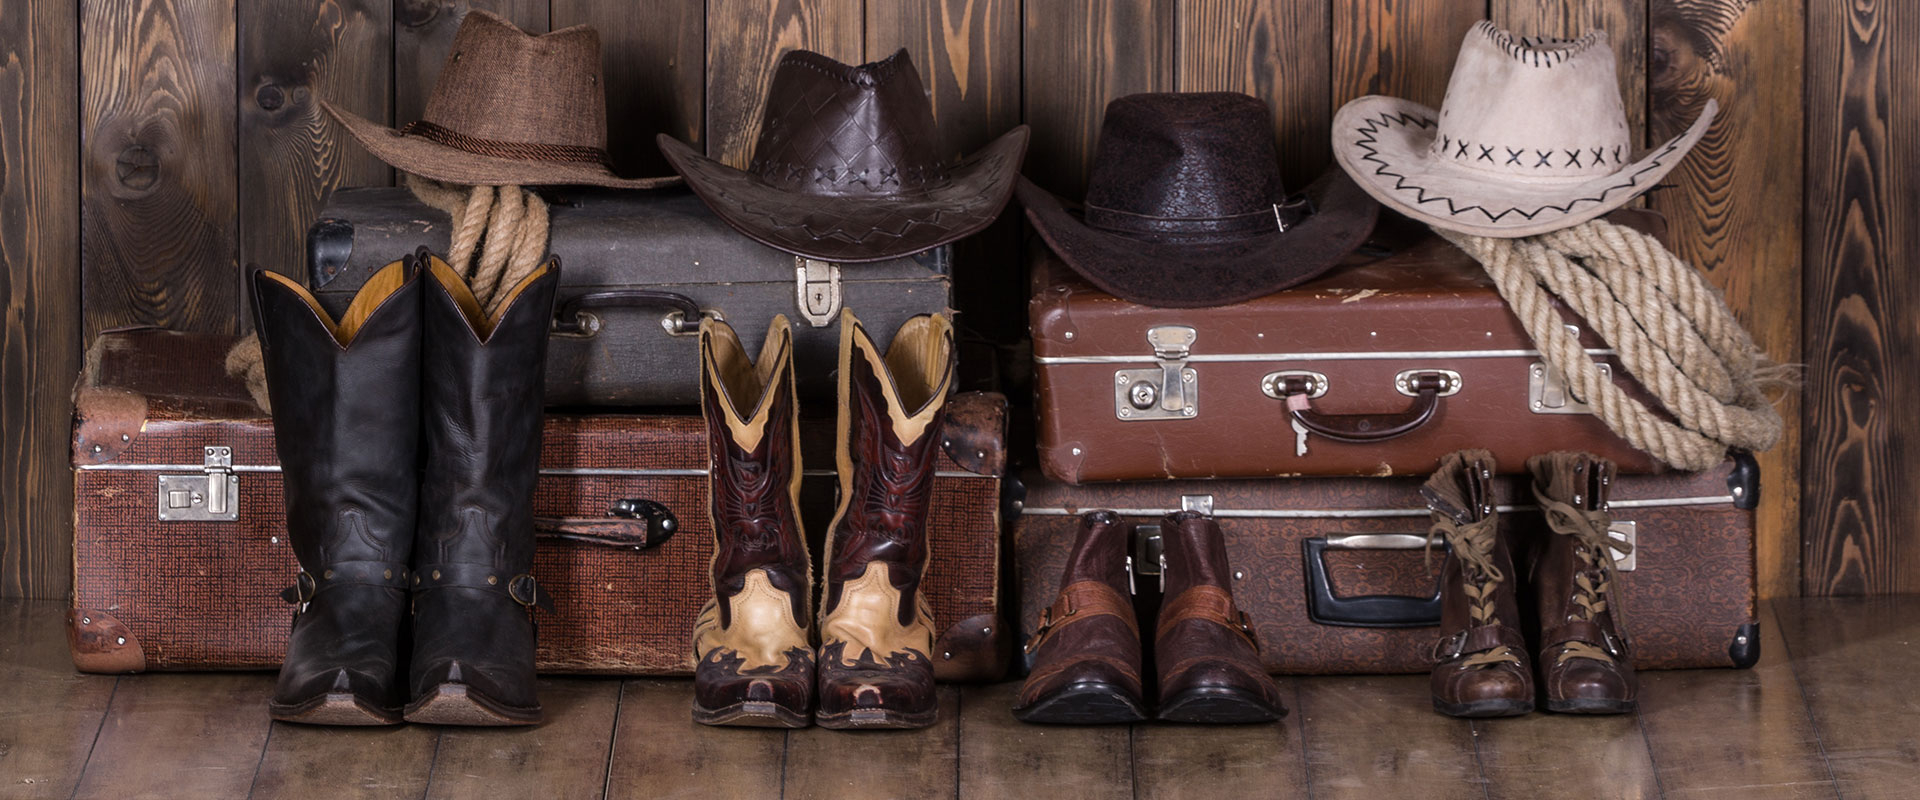 The Boot Shop Saddlery & Western Wear – Cowboy Boot & Leather Shop